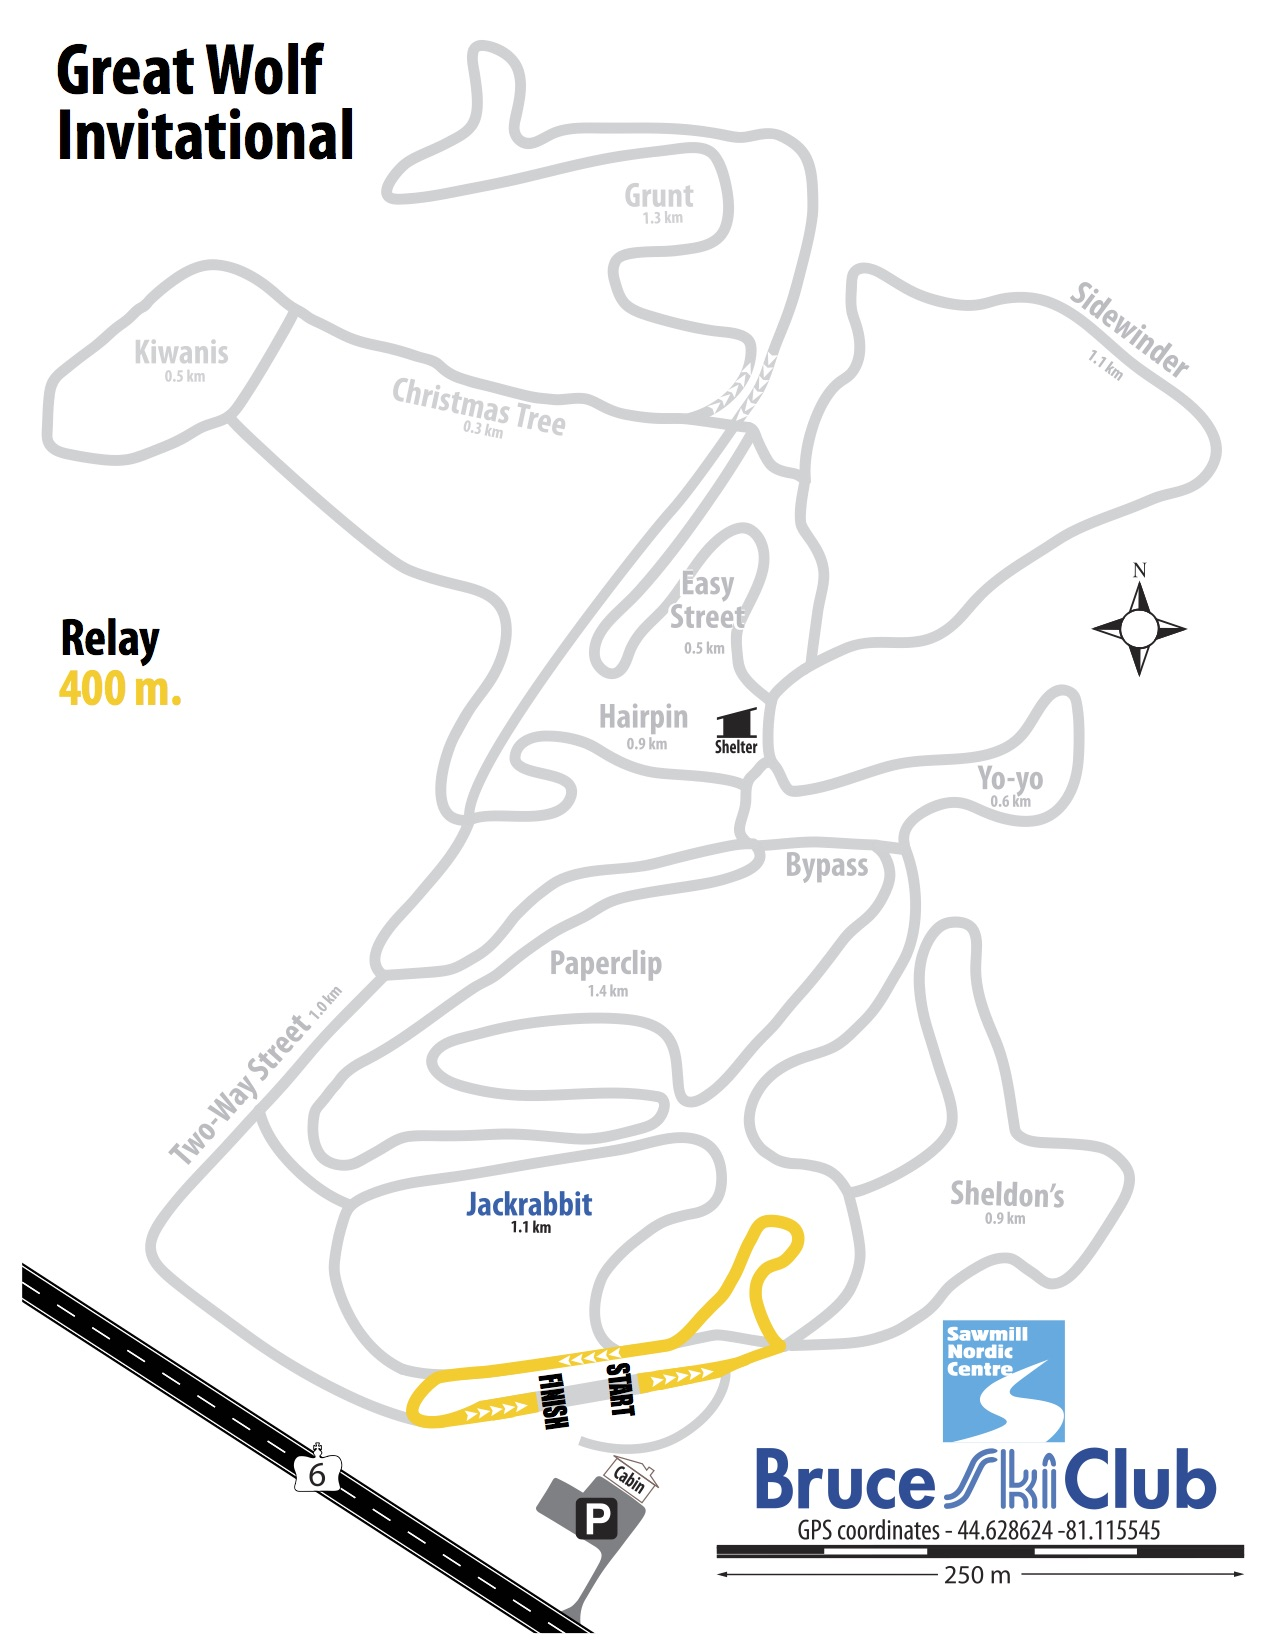 Great Wolf Invitational Cross-Country Ski Race, Hepworth, Ontario - Map: Relay